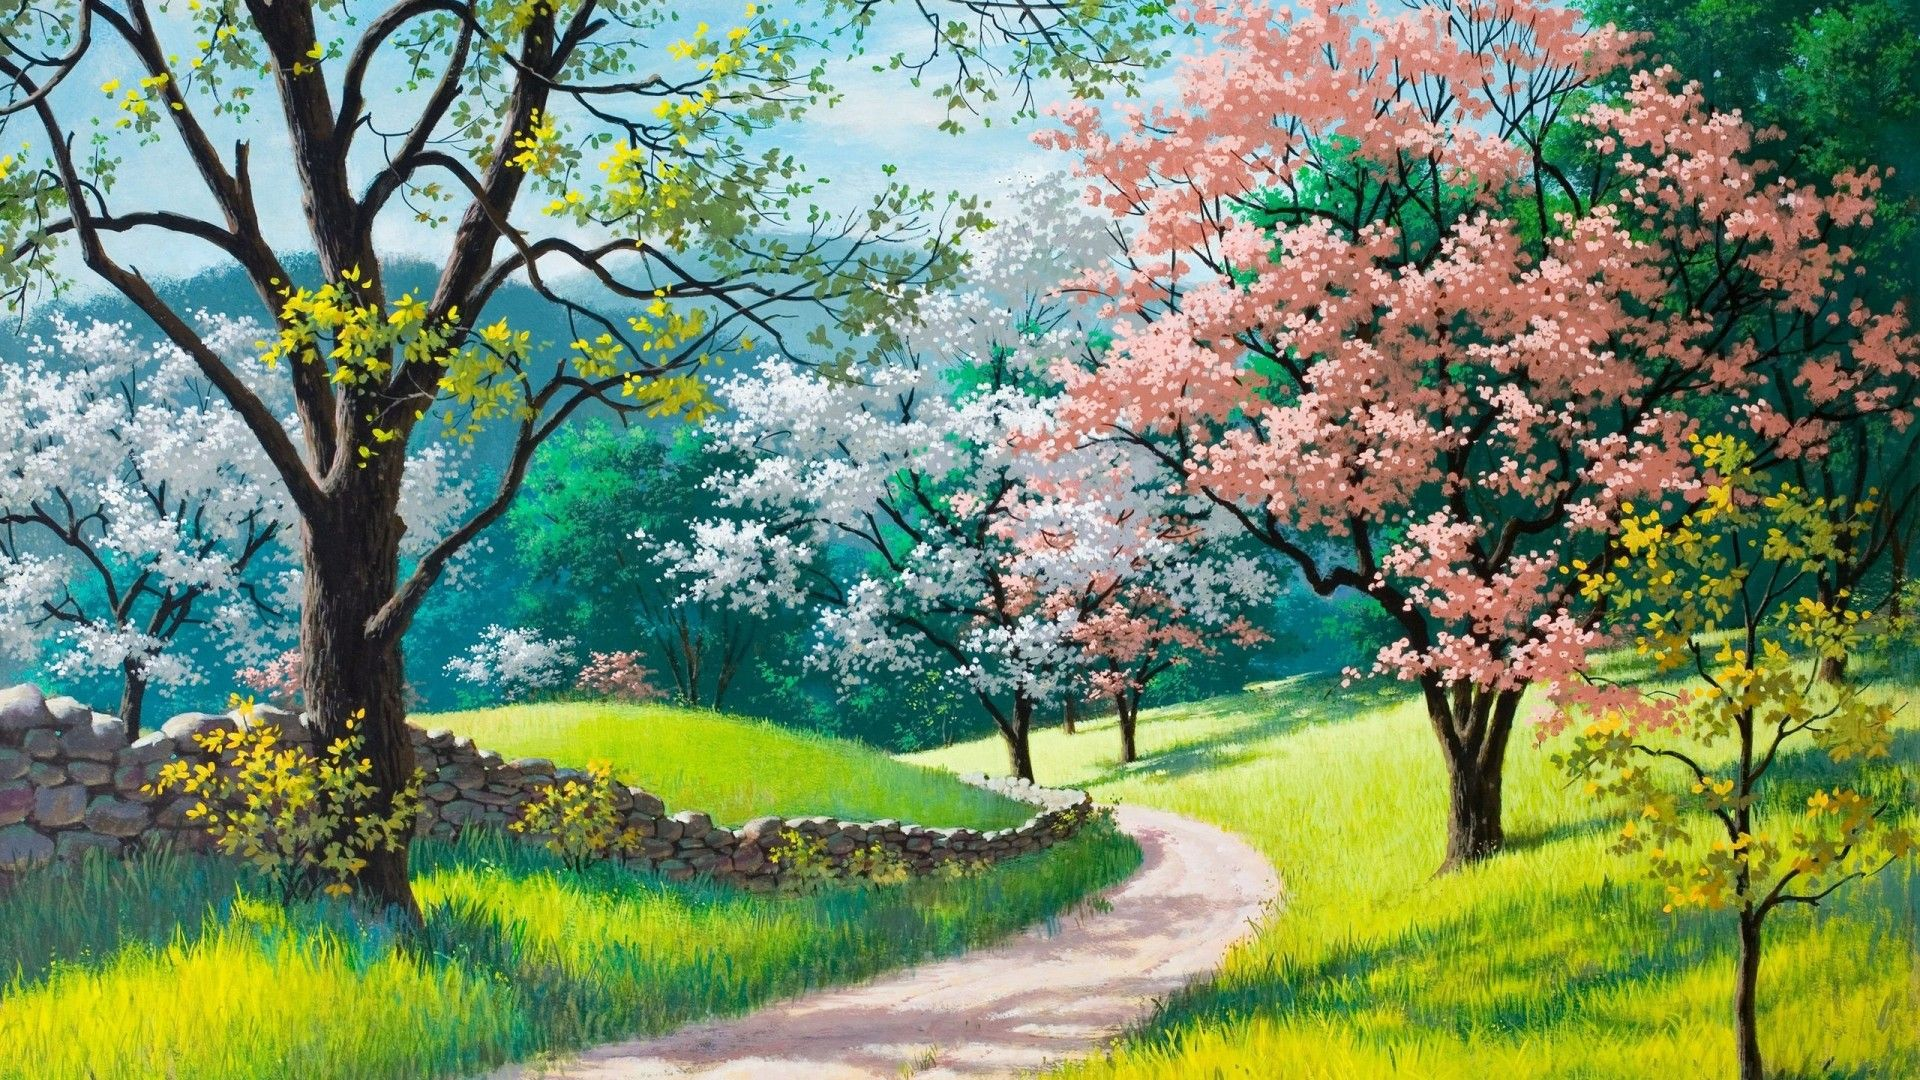 Spring Painting Wallpaper Hd 1920 1080 In 2019 Spring